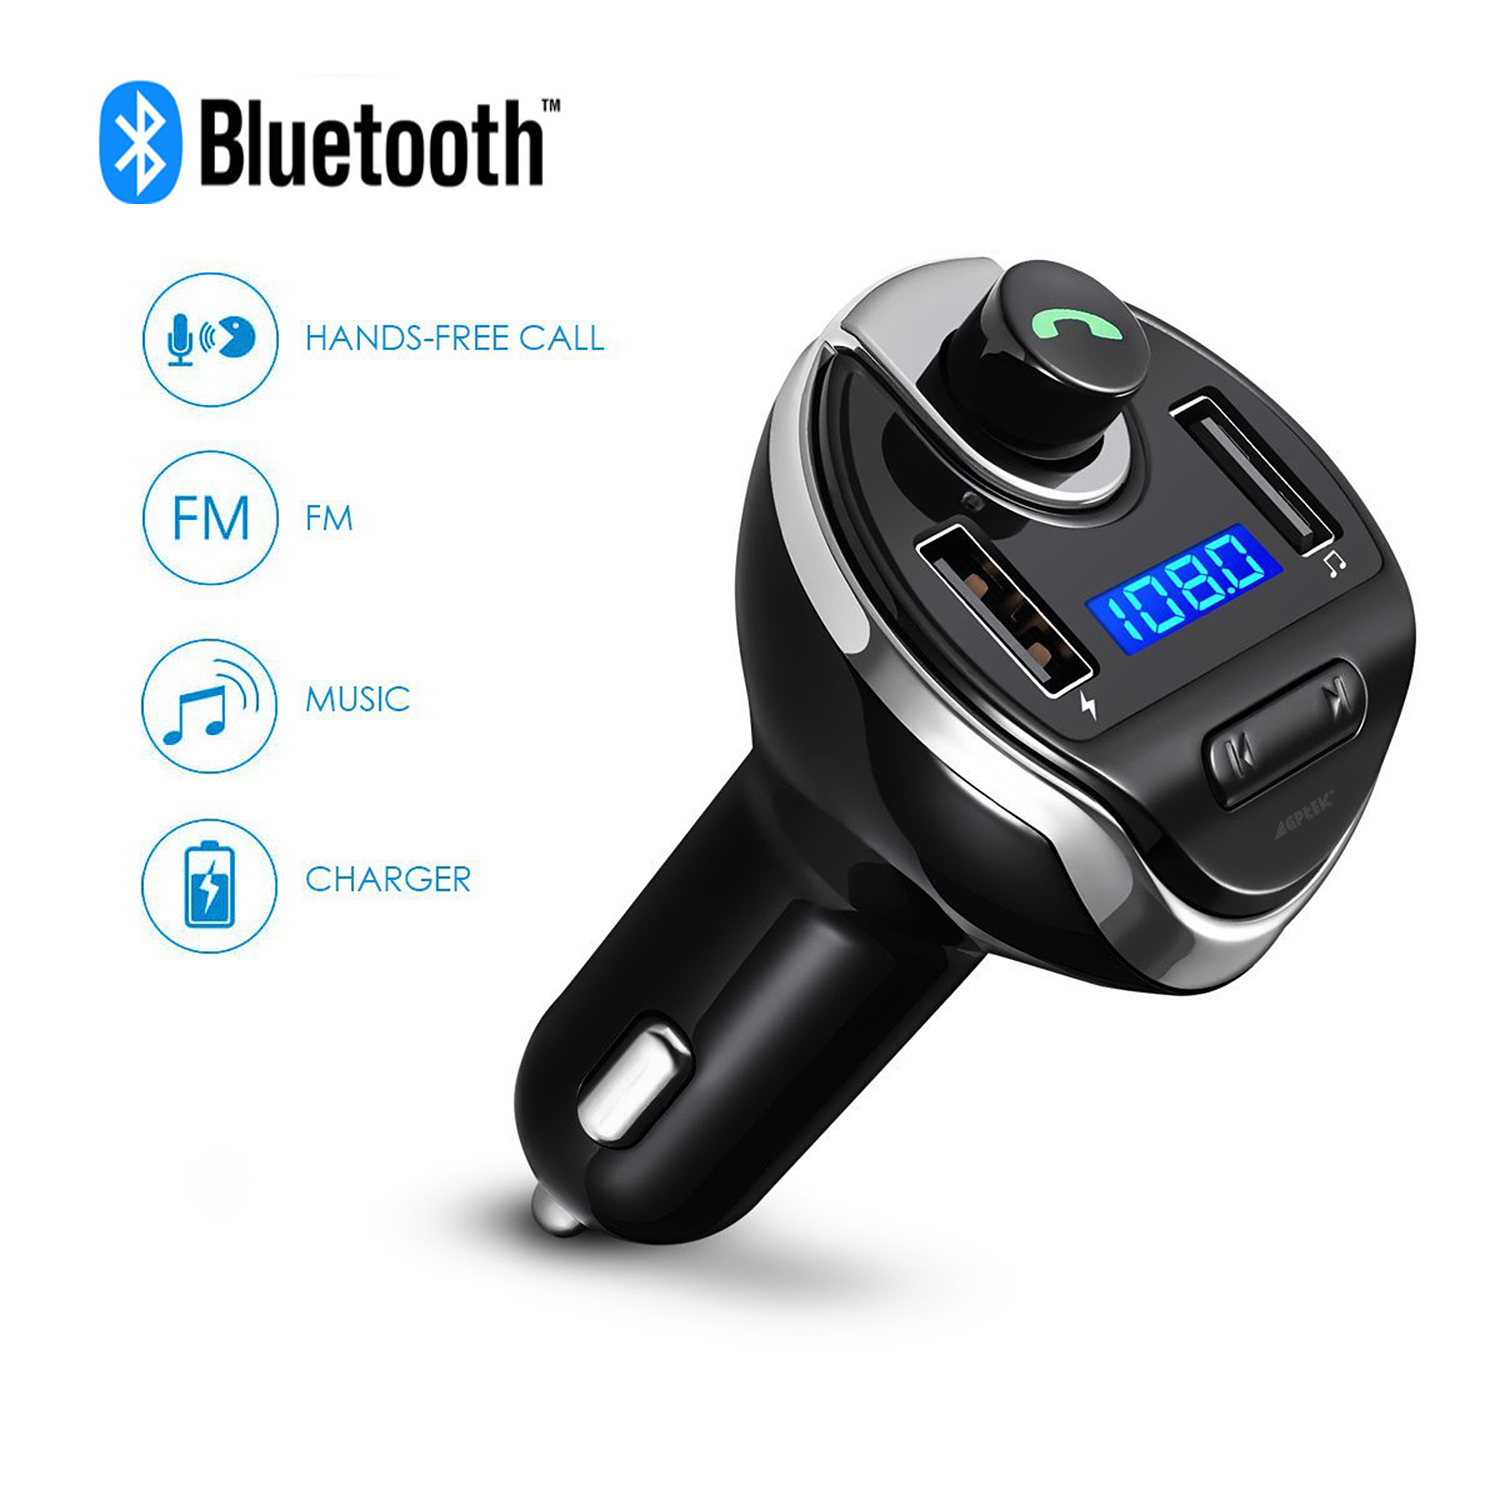 USB Car Bluetooth FM Transmitter, Jelly Comb Wireless Bluetooth FM Transmitter Radio car auxiliary adapter Car Kit with Dual USB Charging Ports Hands Free Calling for iPhone,ipod, Samsung, etc (Black)